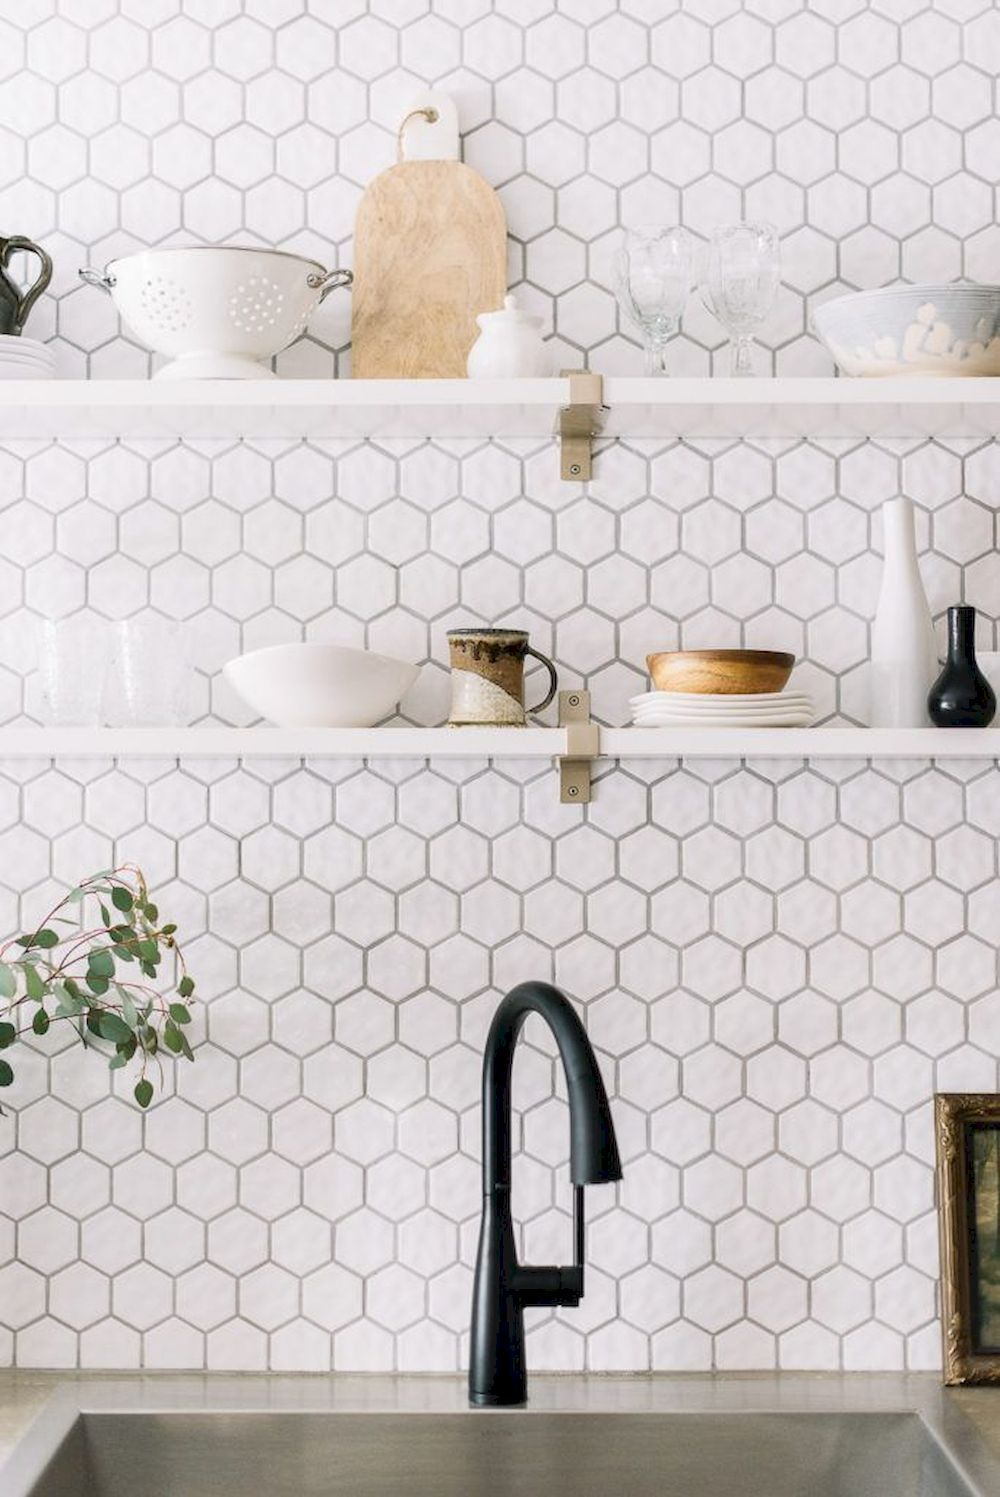 Latest Trend In Kitchen Backsplash It S 2019 And That Means It S